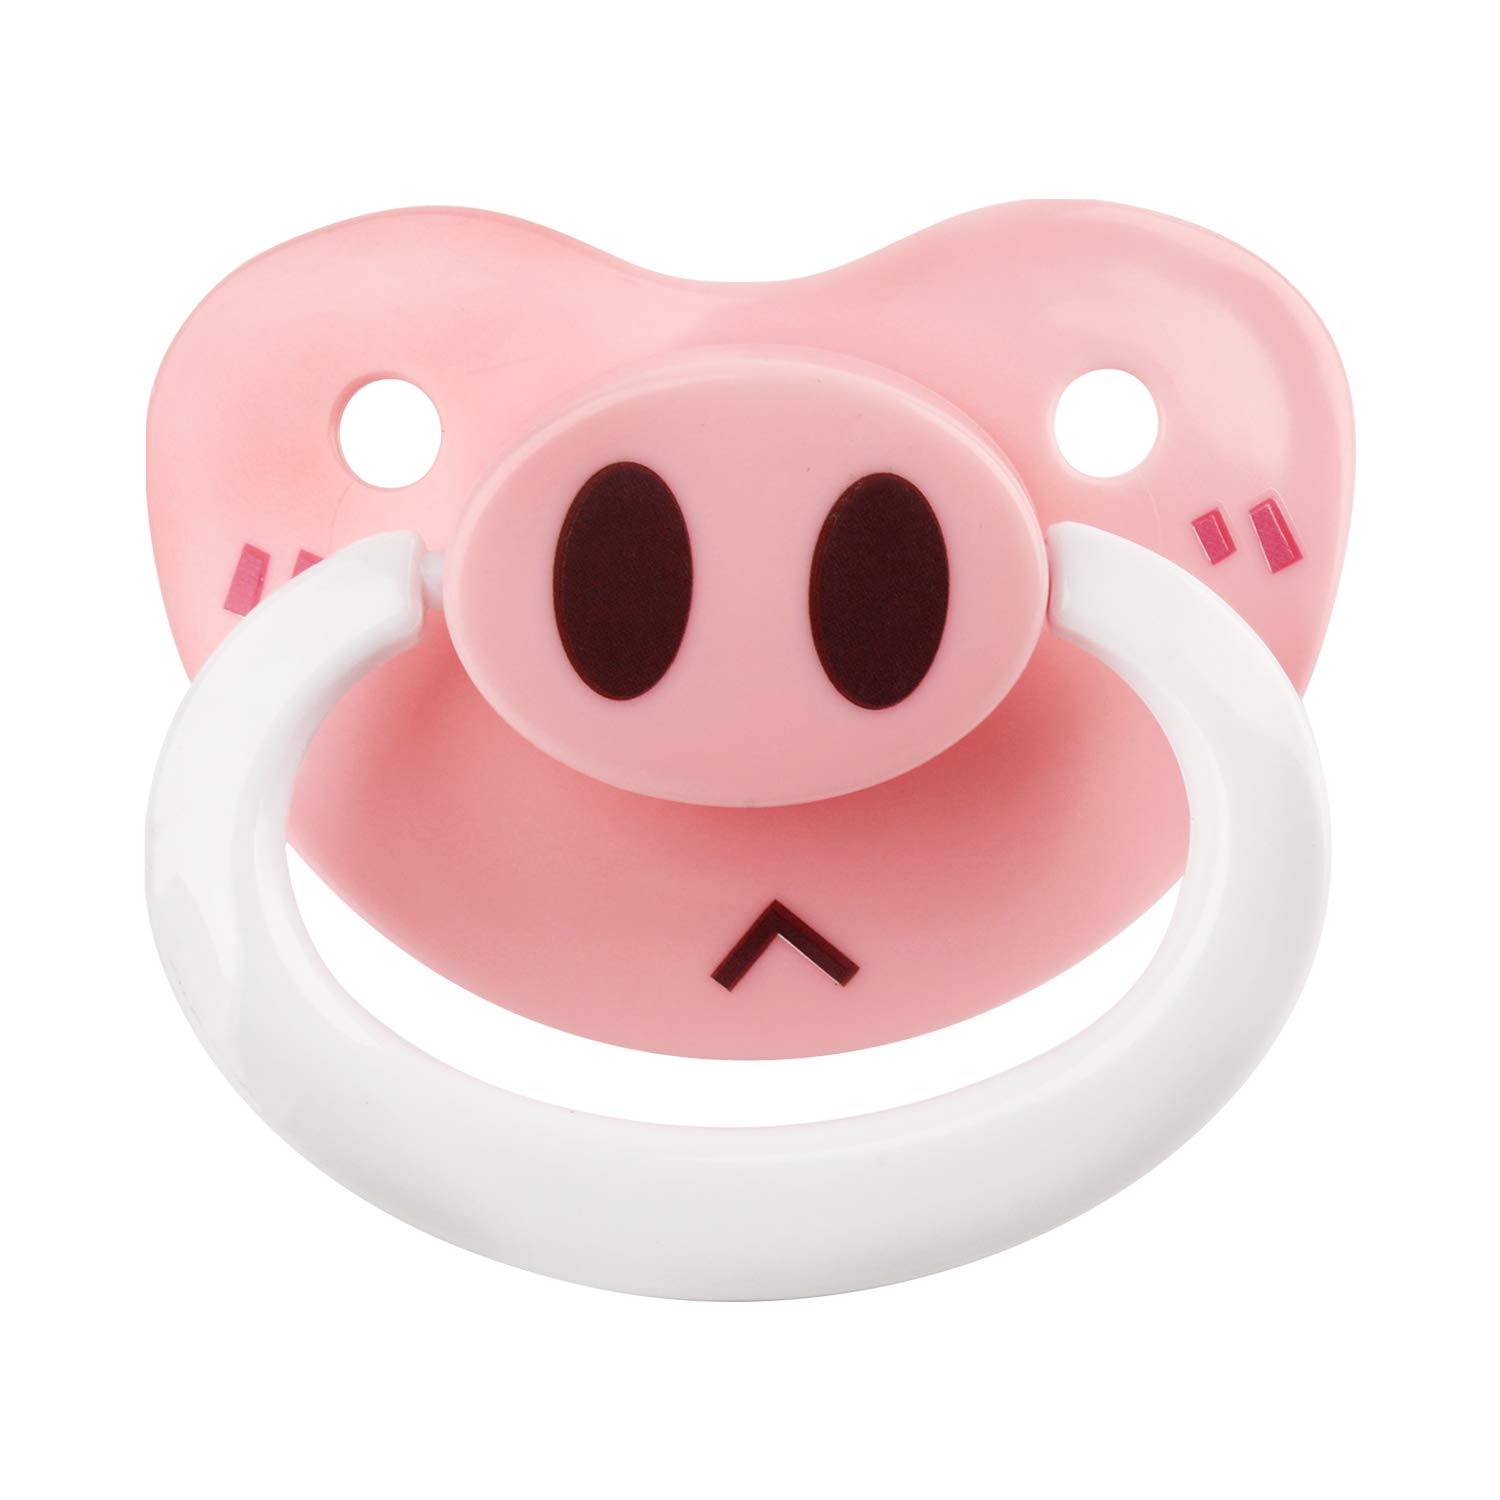 TEN@NIGHT Christmas Adult Baby Pacifier Dummy Silicone Nipple Teat DDLG Cute Printing Animal (Pink+White)